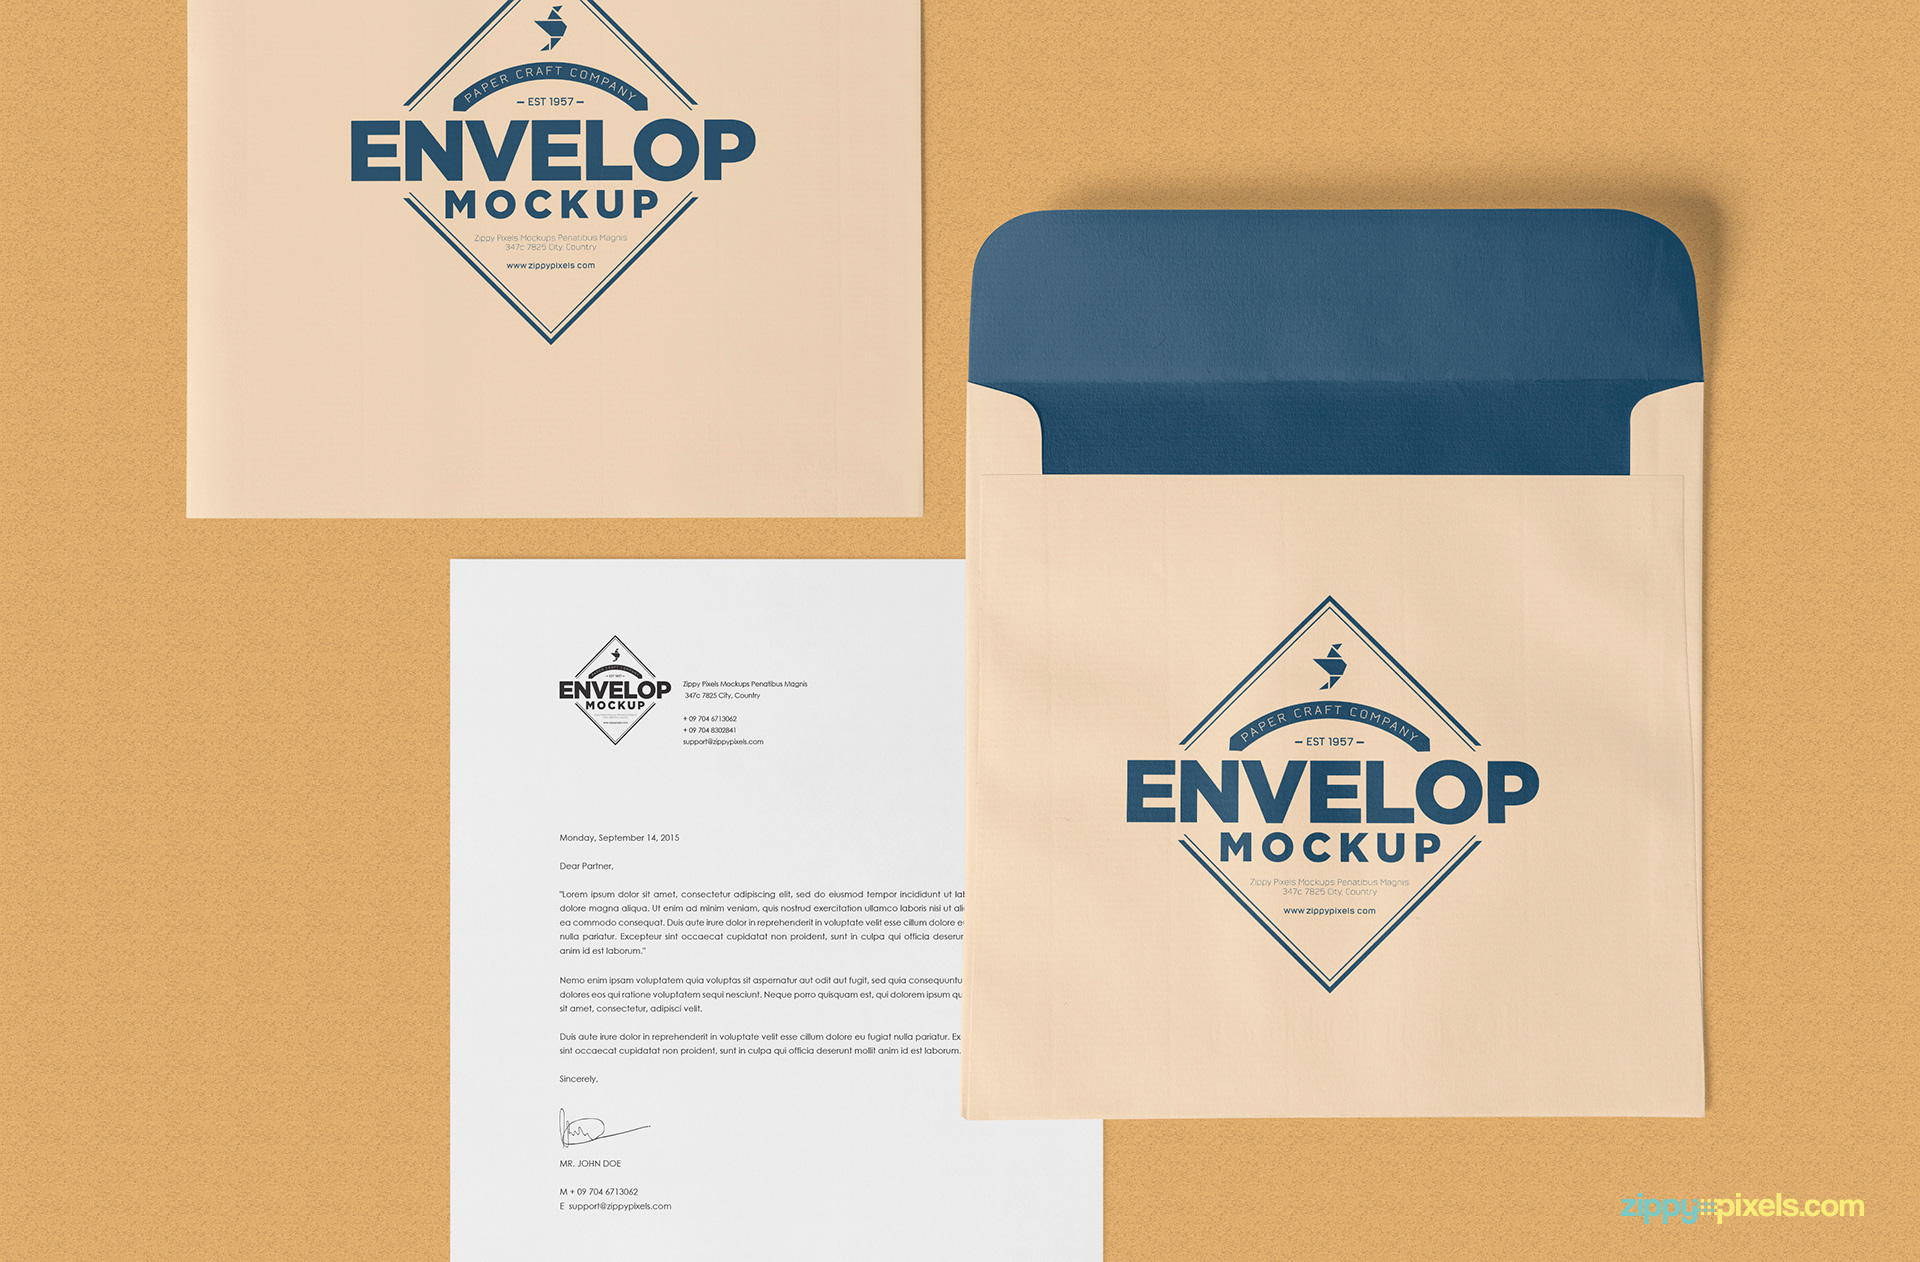 envelope-mockups-open-flap-card-back